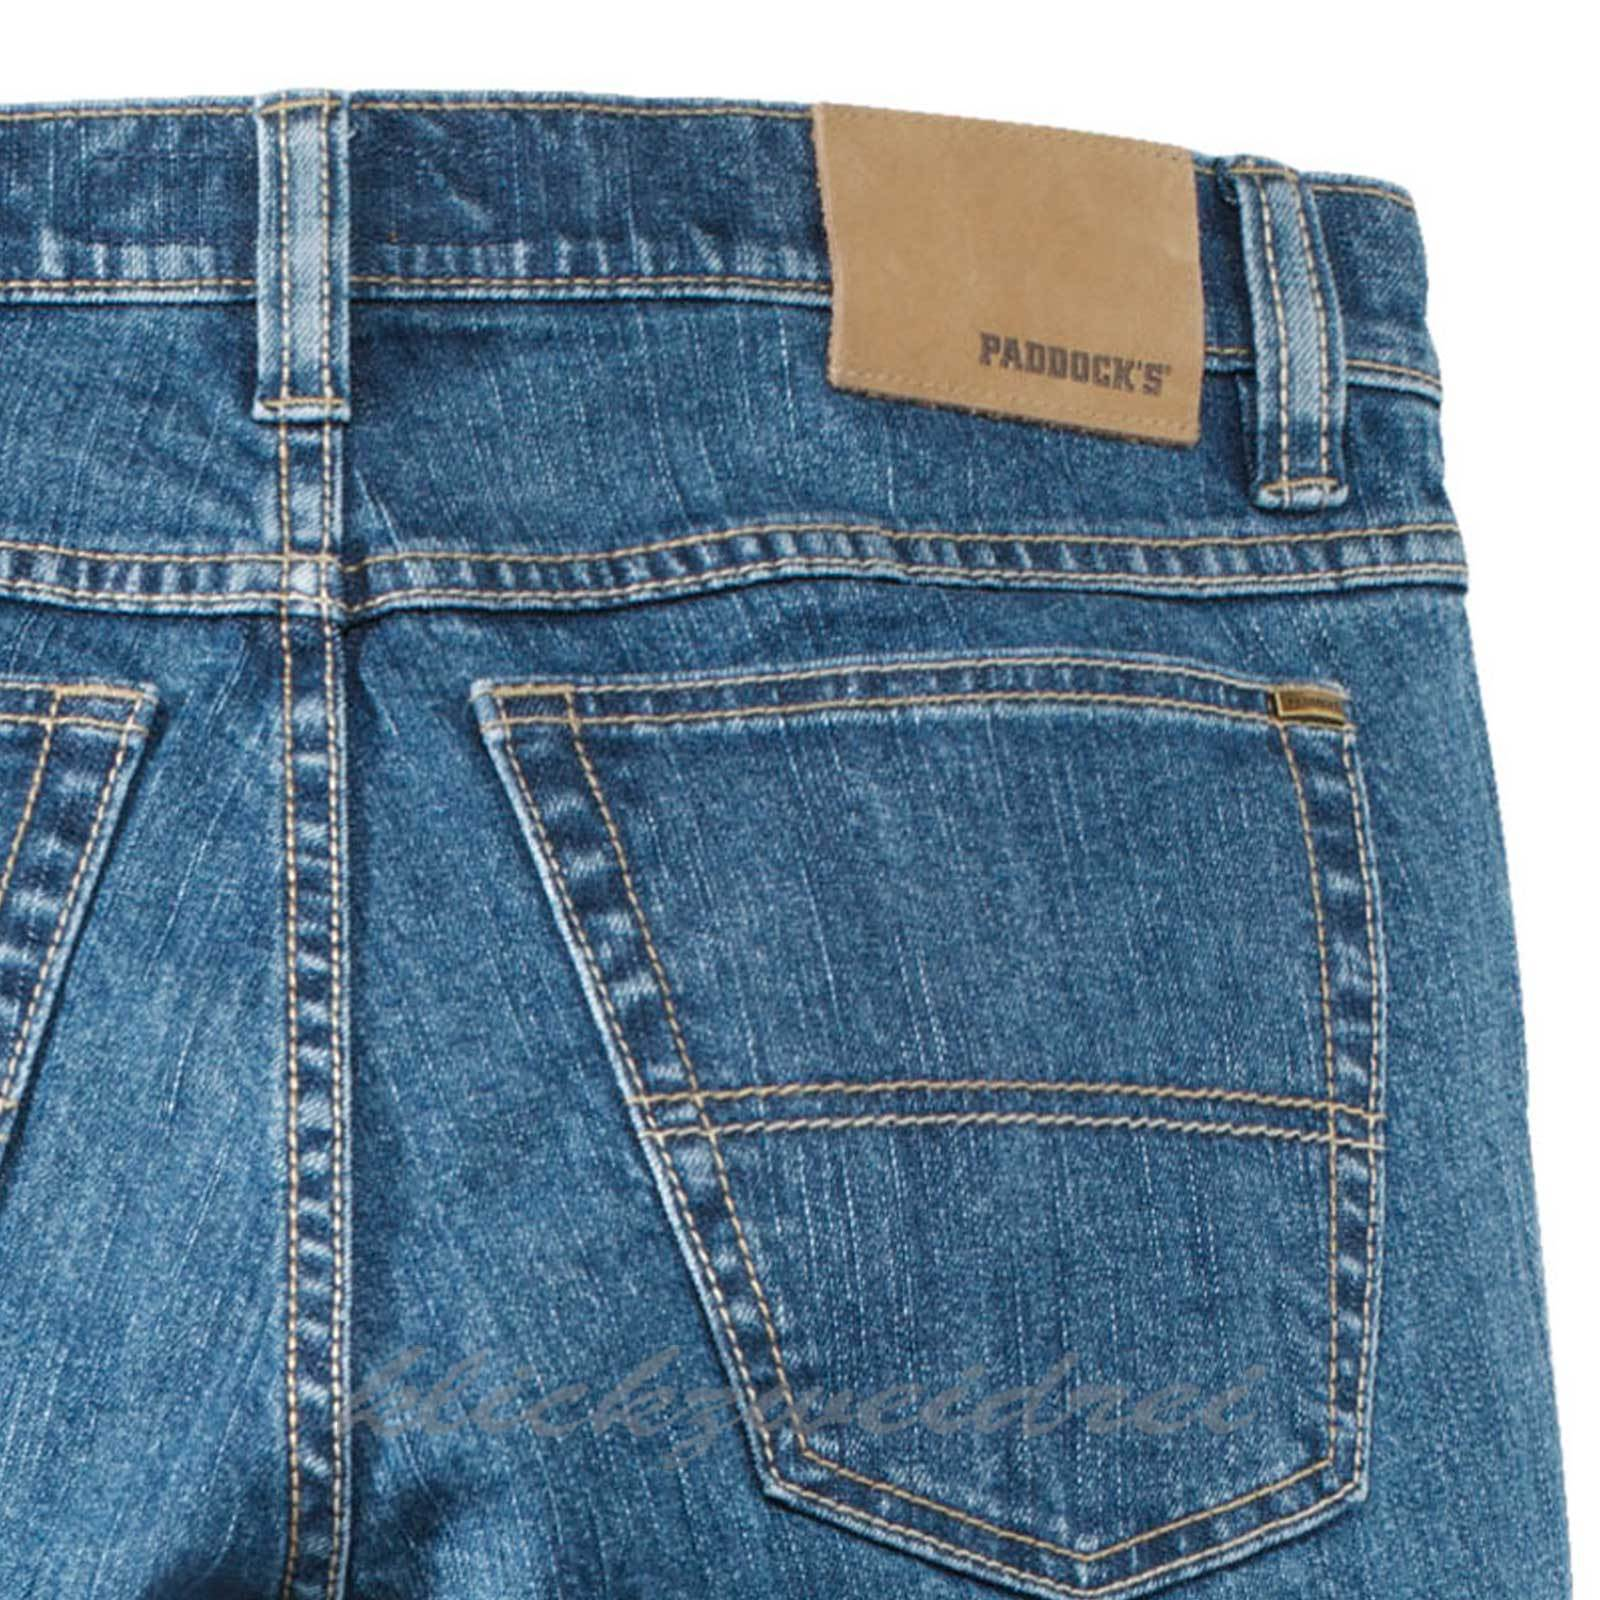 Per recinti RANGER RANGER RANGER 45.26 Top Stretch Denim Stone blu light used selezionare la dimensione 9e5d23